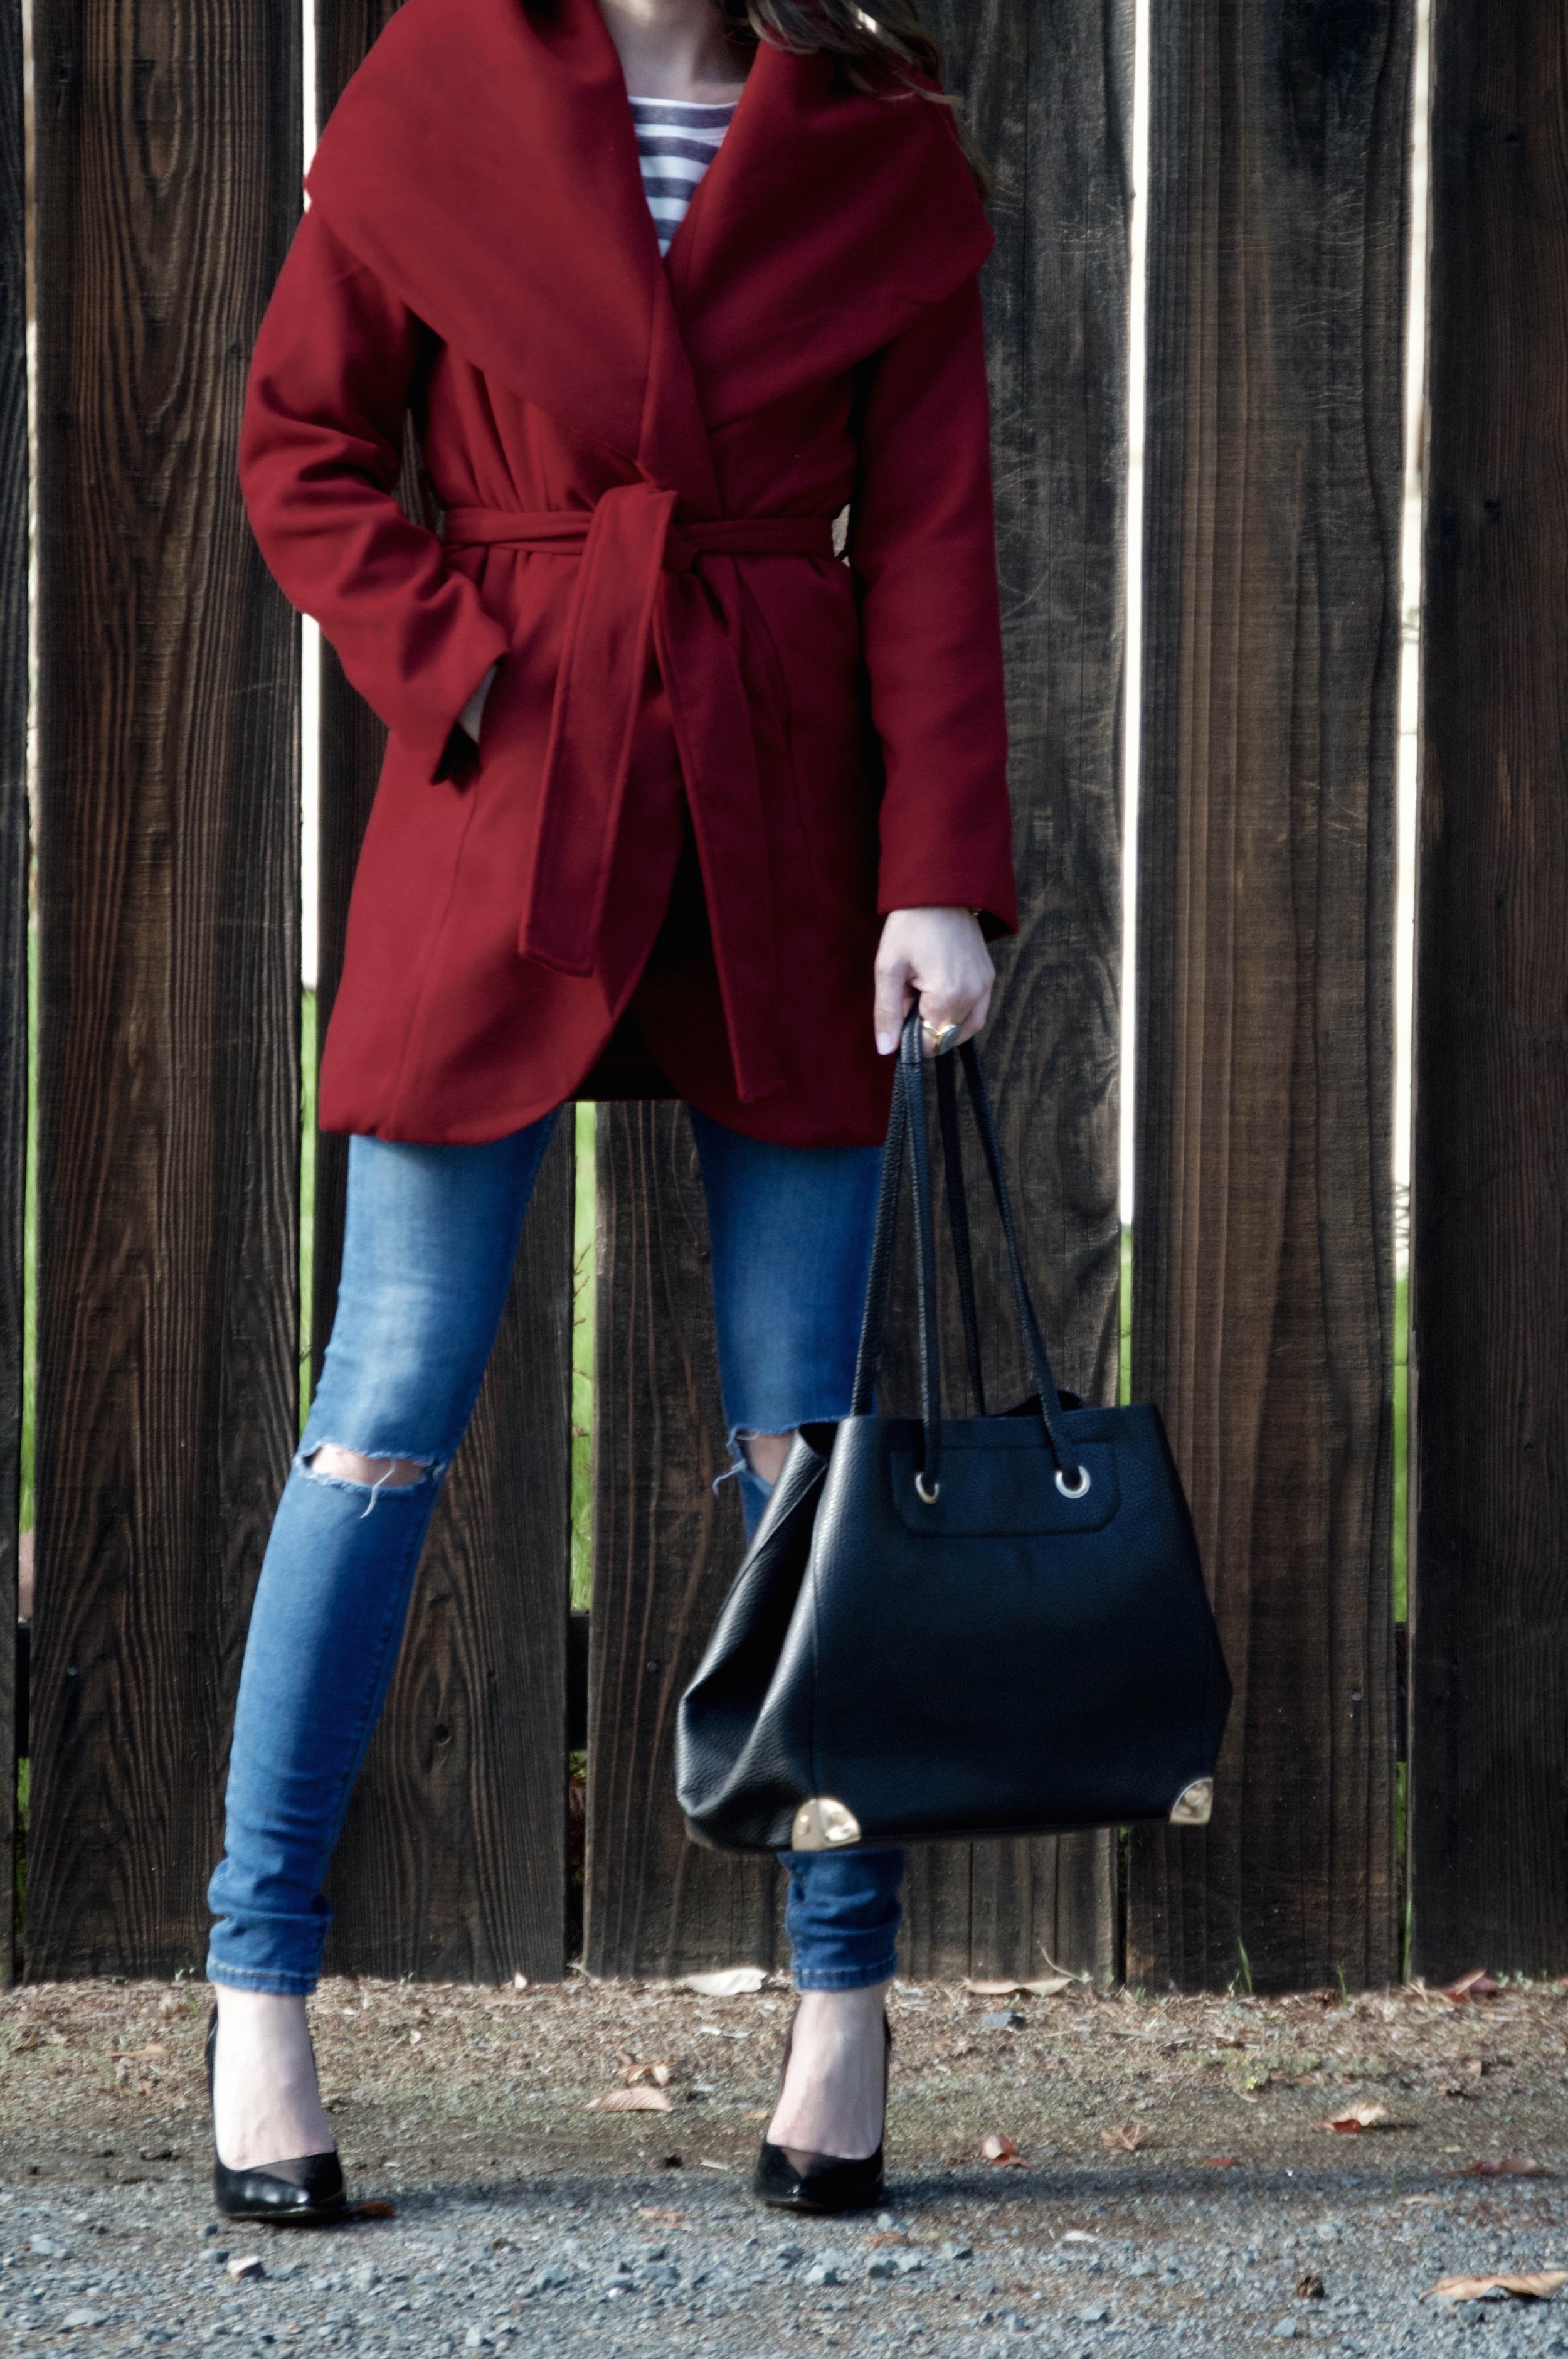 Click through to Shop the Look.Top: c/o  Chicwish . Coat: c/o  SheIn . Jeans: Old. See similar  here . Shoes: Steve Madden . Bag: c/o  Lookbook Store . Sunglasses: Ray-Ban .